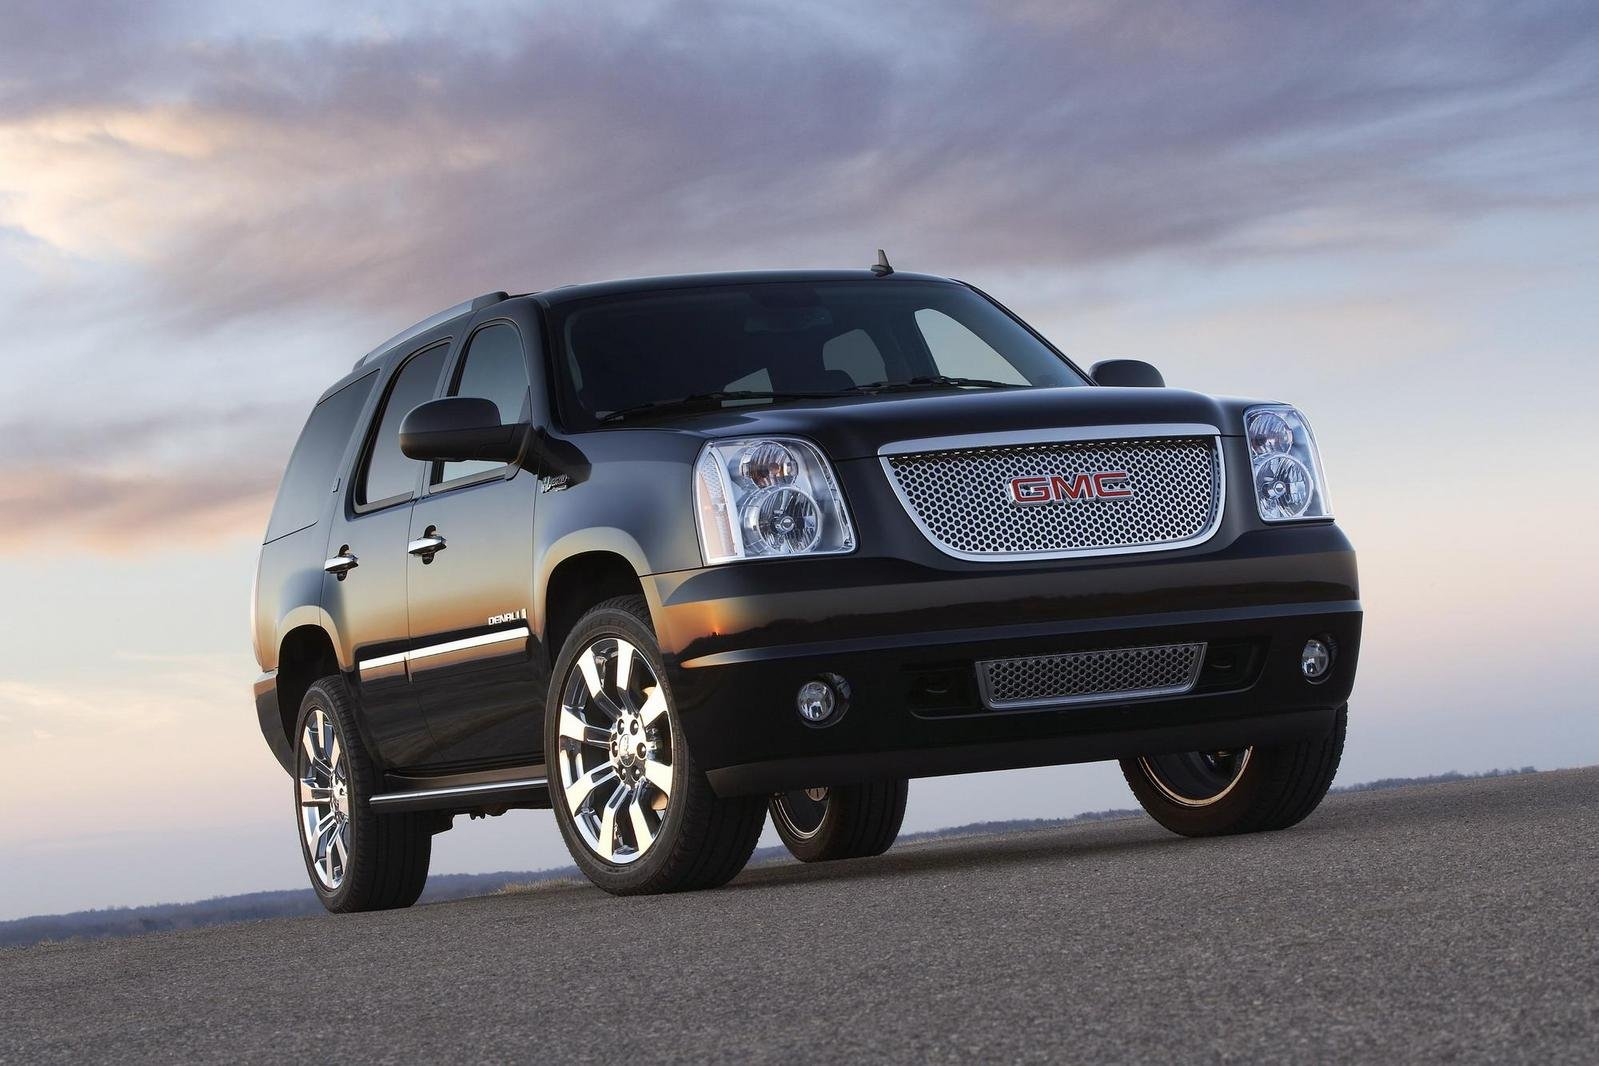 2009 GMC Yukon Denali Hybrid Review - Top Speed